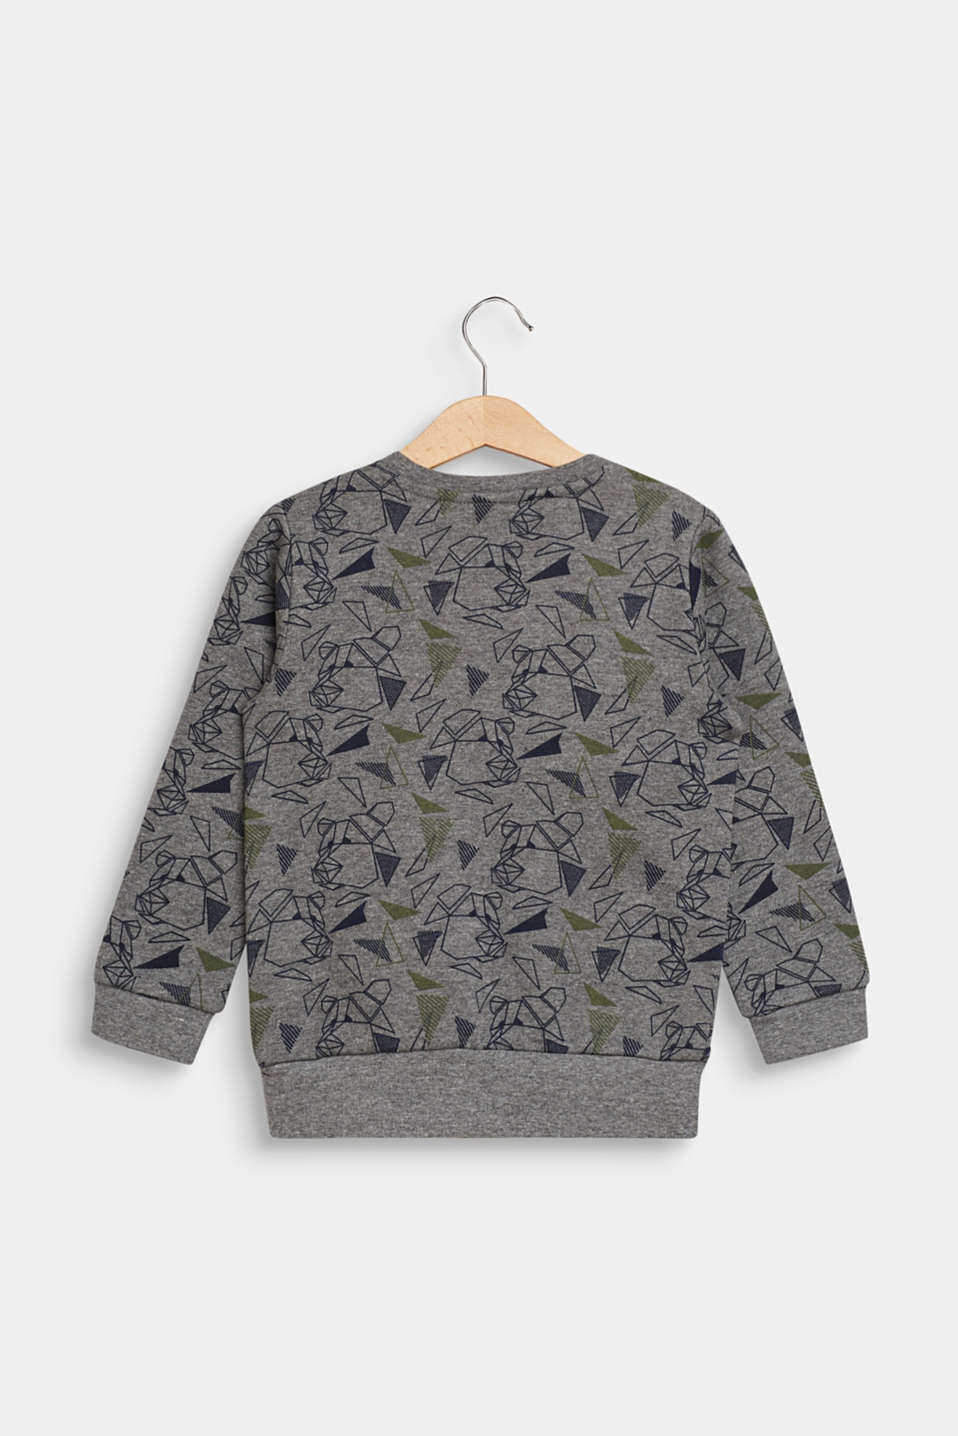 Sweatshirt with a cool graphic bear print, DARK HEATHER G, detail image number 1